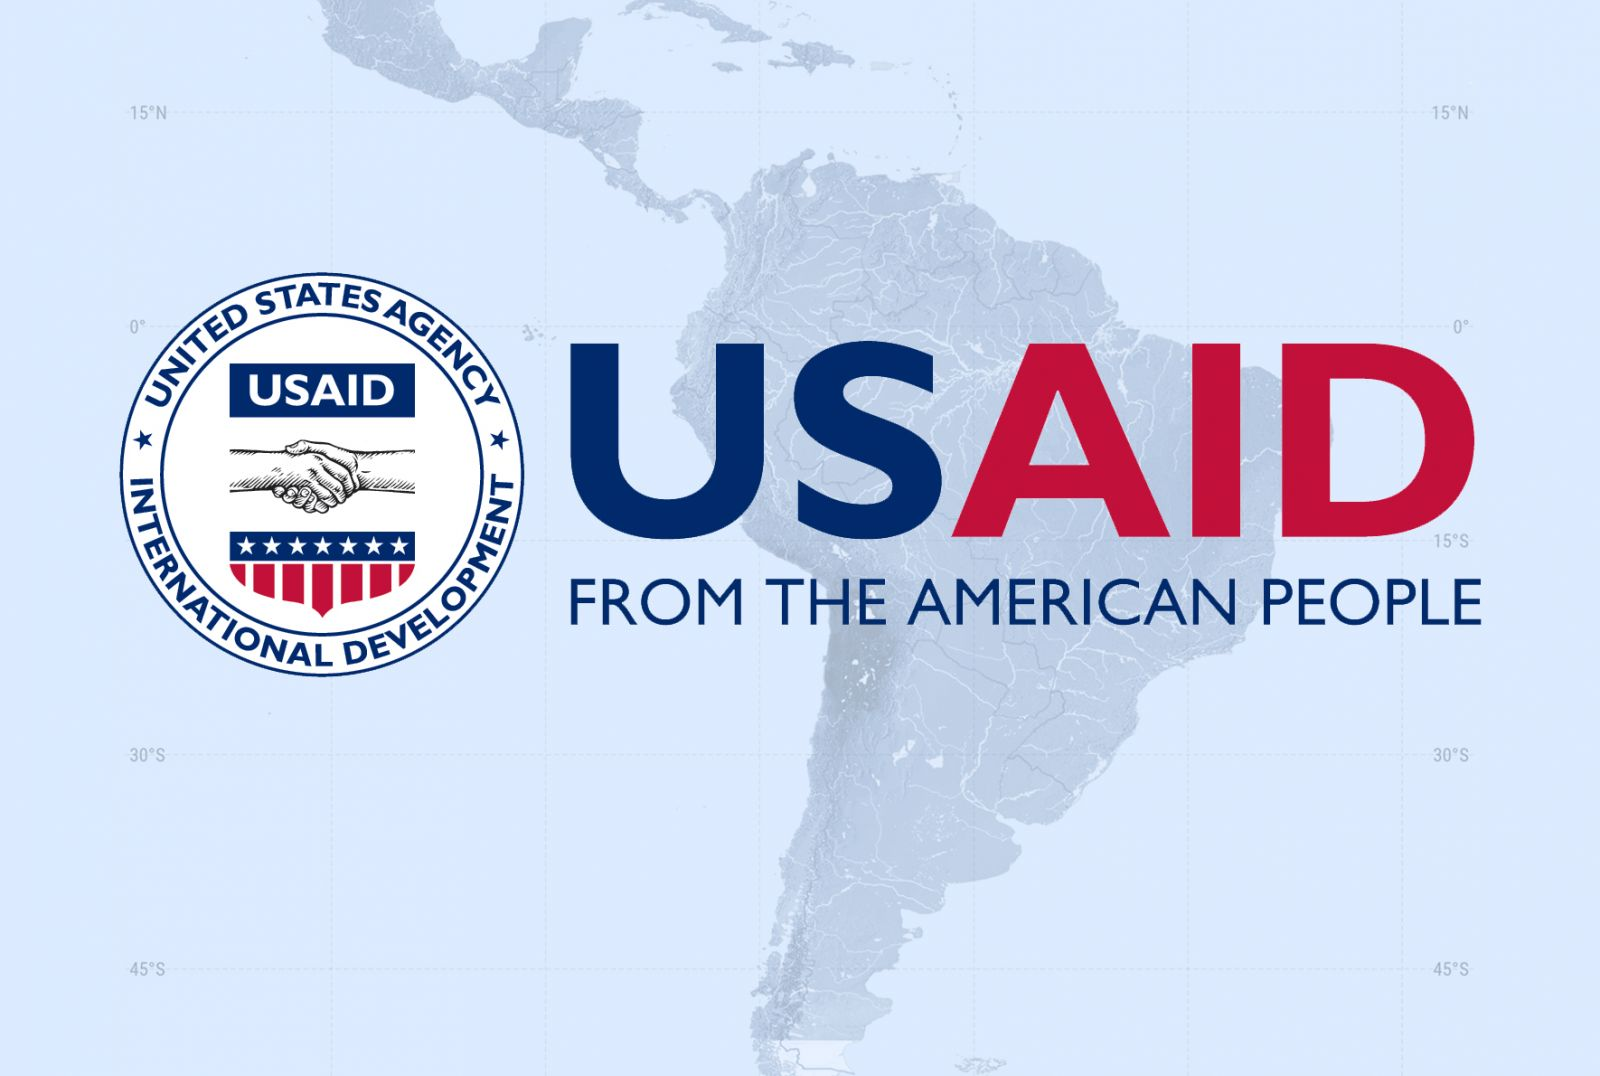 USAID Logo on map